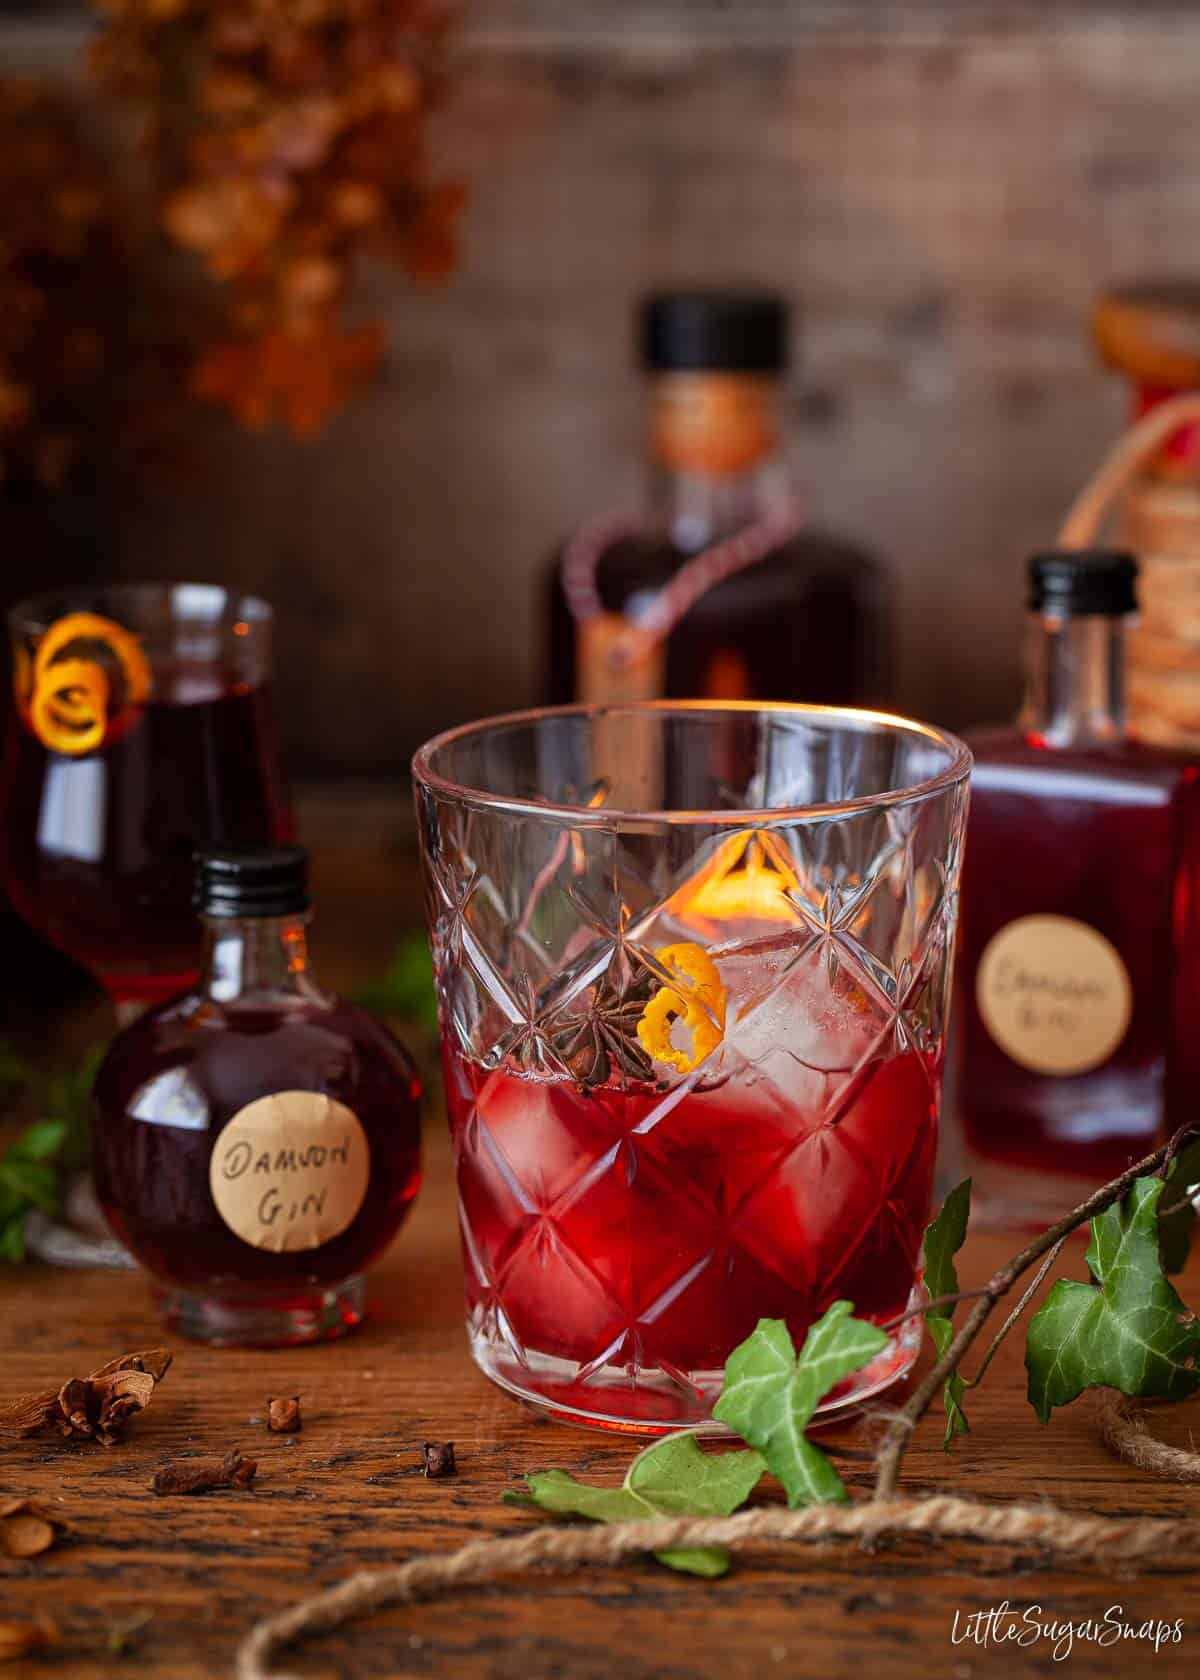 A serving of damson gin liqueur served over ice with an orange zest garnish